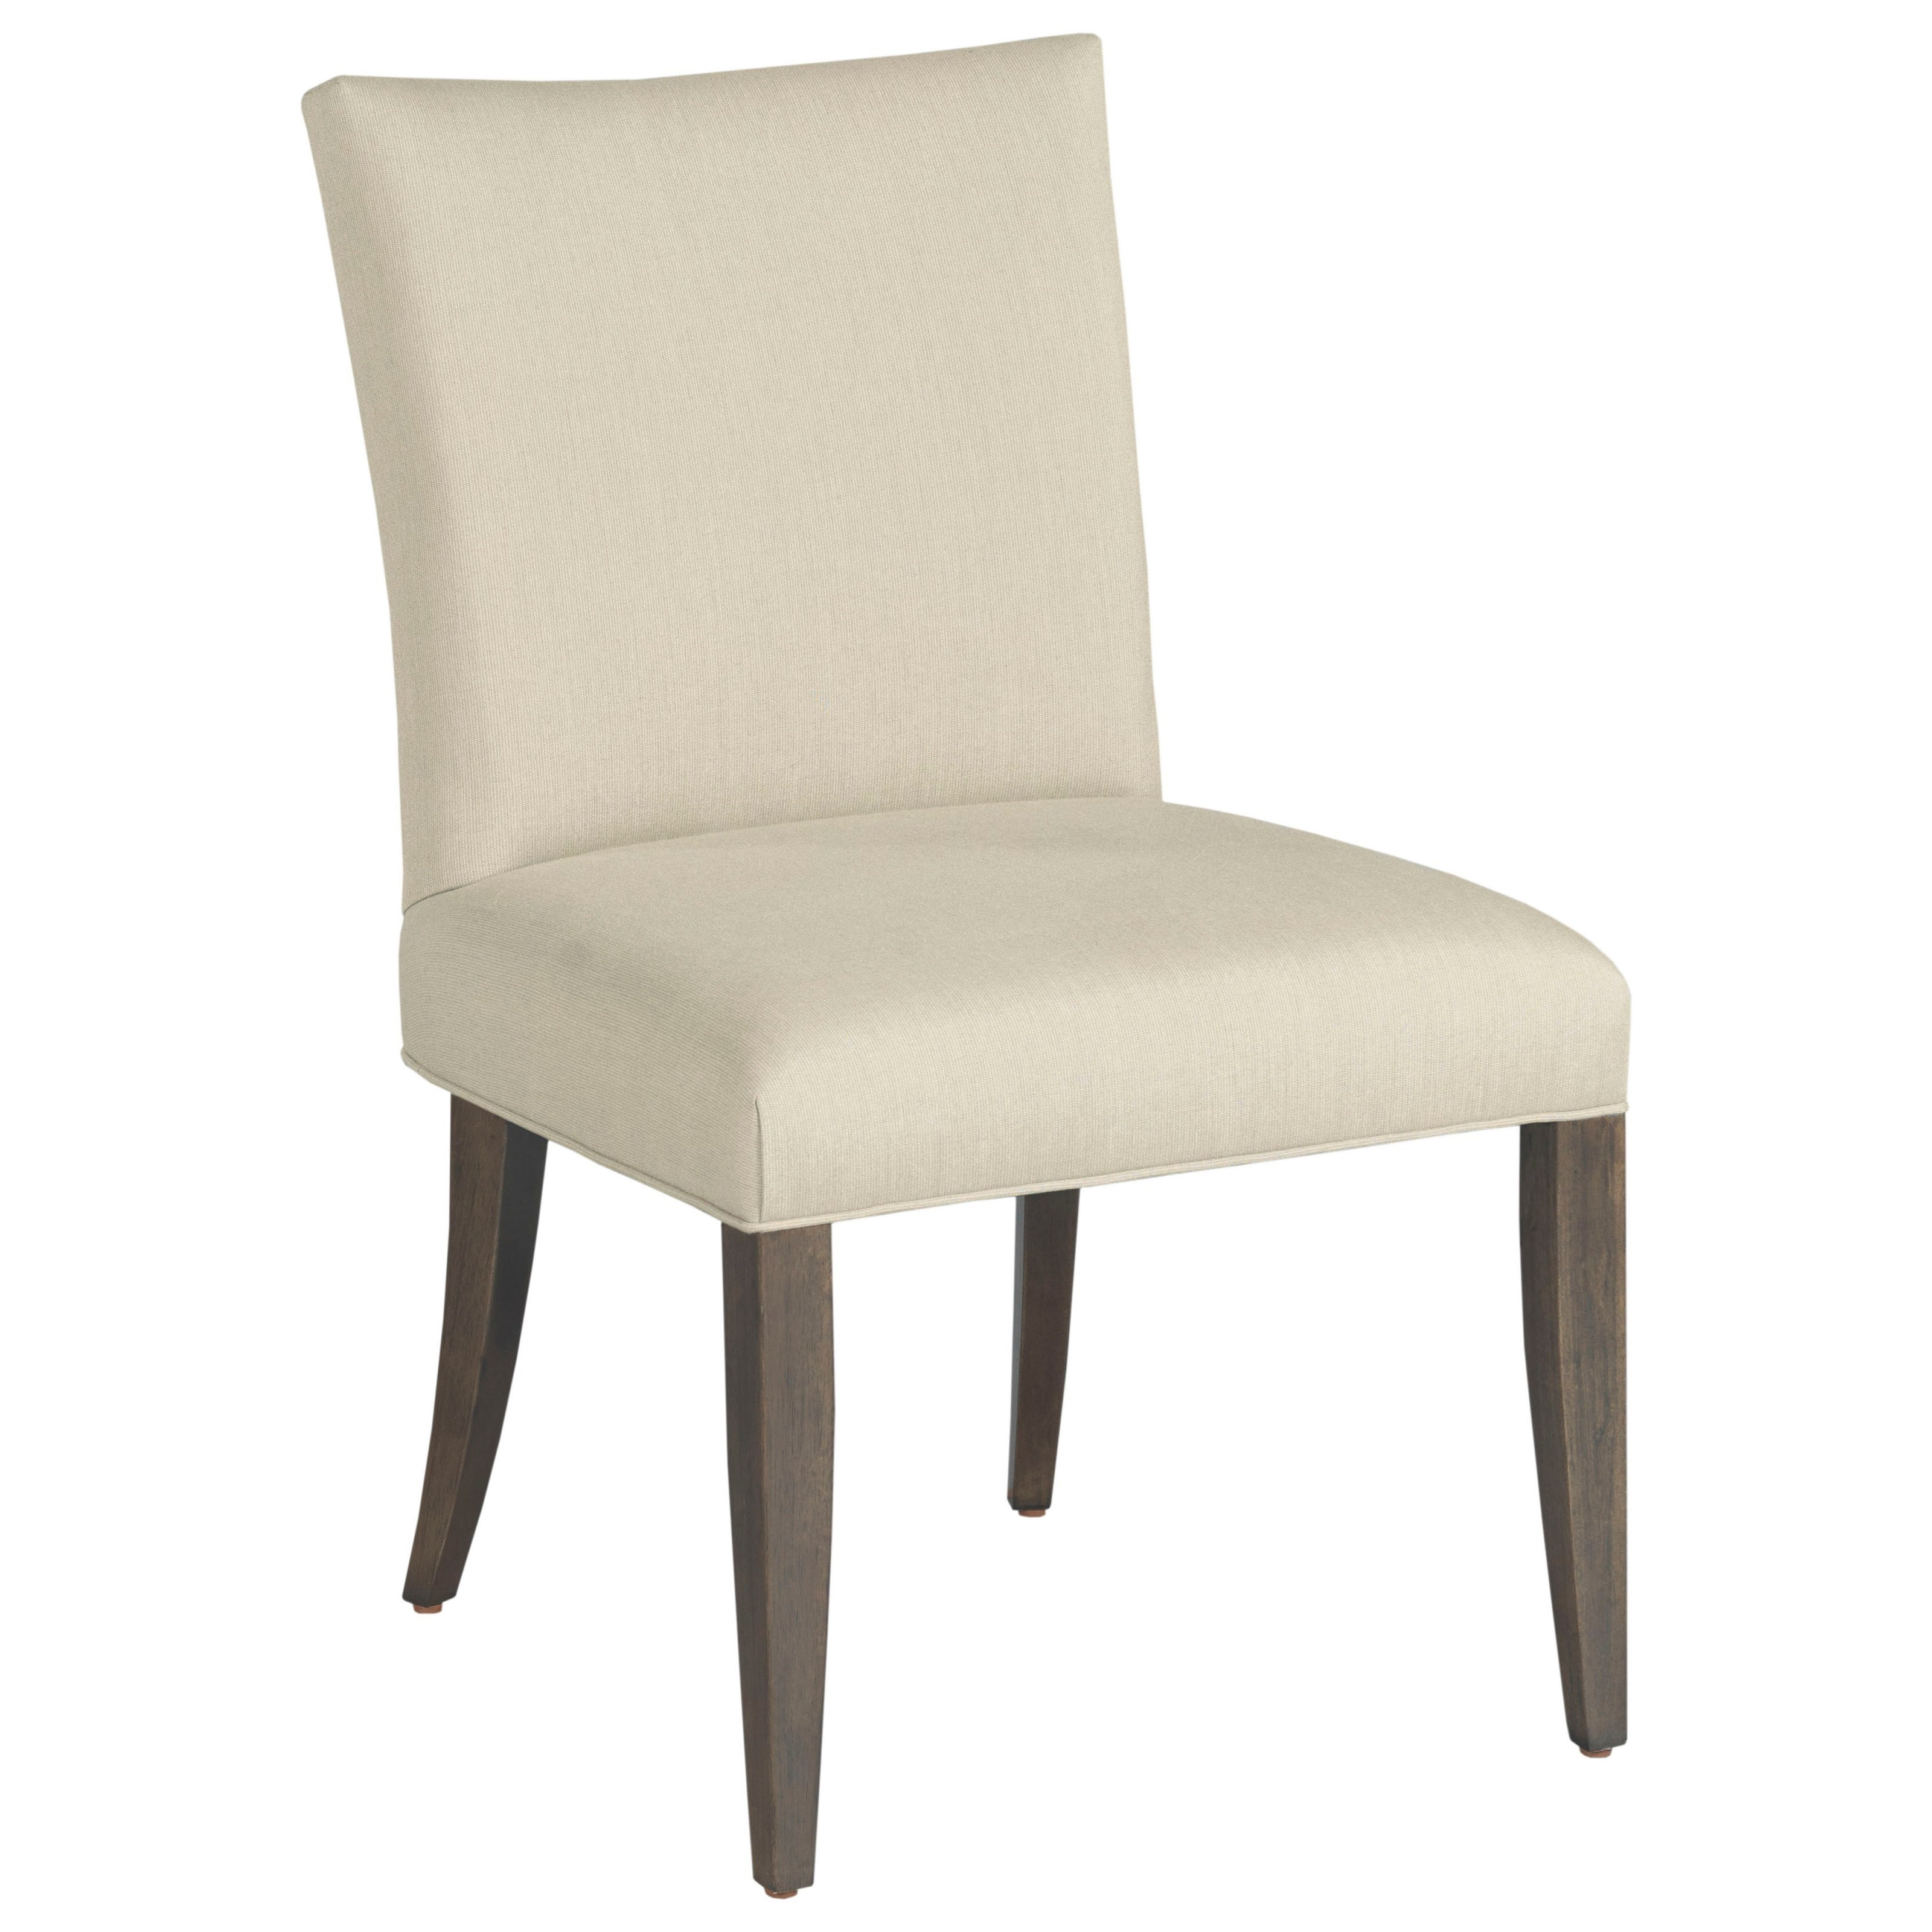 American Drew Ad Modern Organics Benton Side Chair - Item Number: 600-636